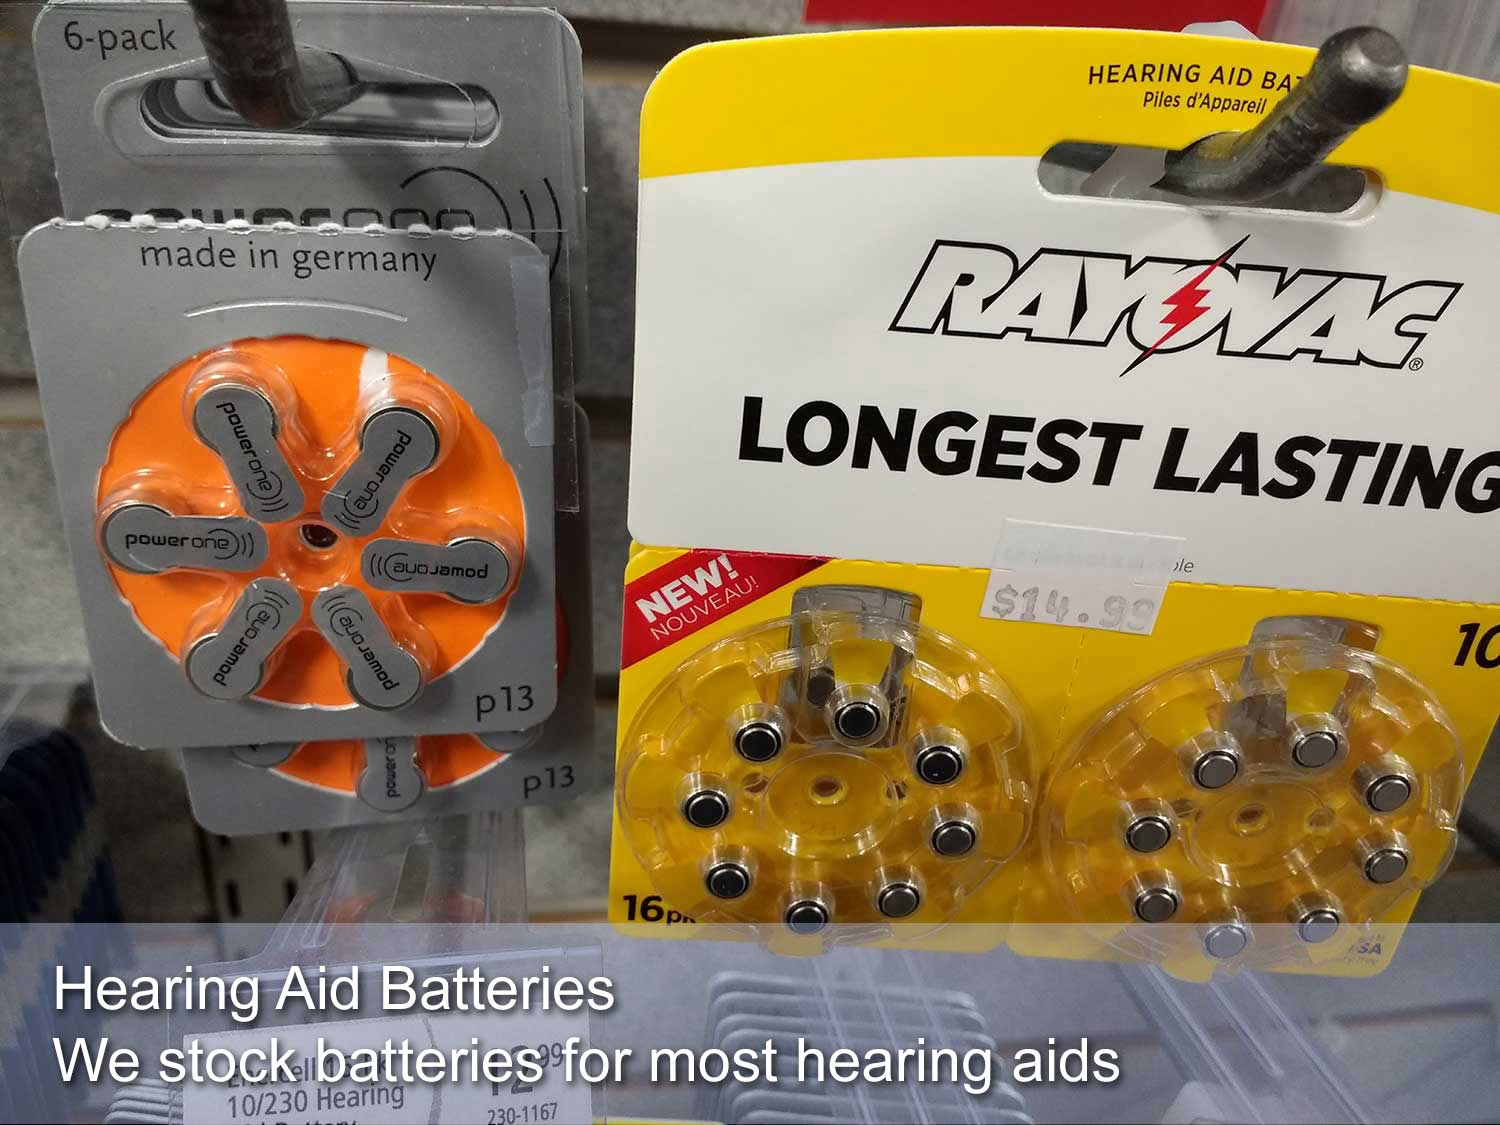 We stock batteries for most hearing aids.